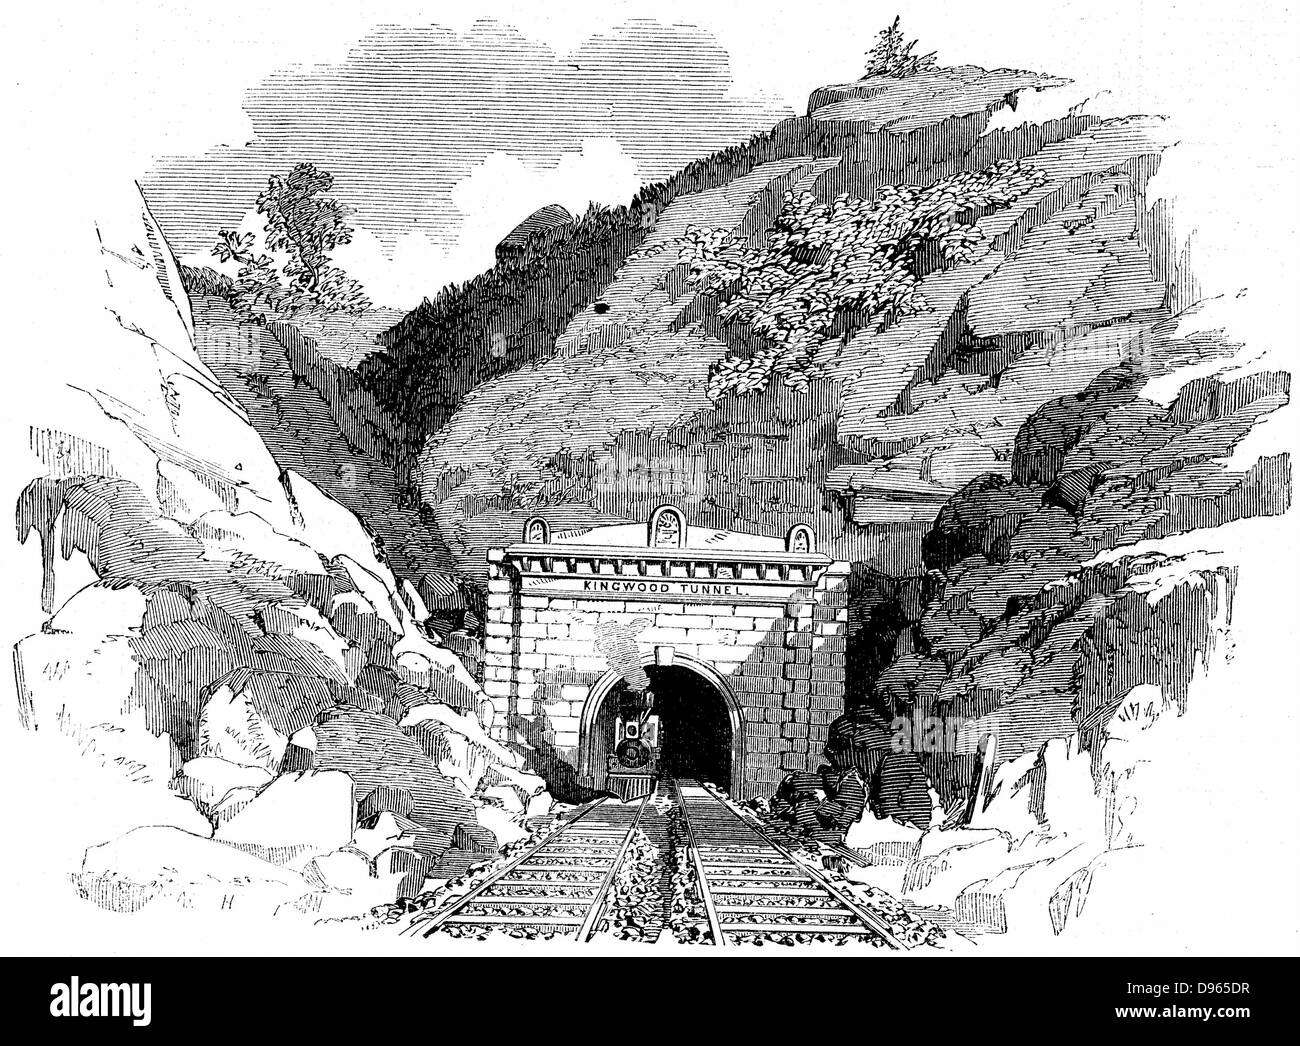 Baltimore and Ohio Railroad: Locomotive emerging from the 4100-ft Kingwood Tunnel through the Alleghany Mountains. - Stock Image